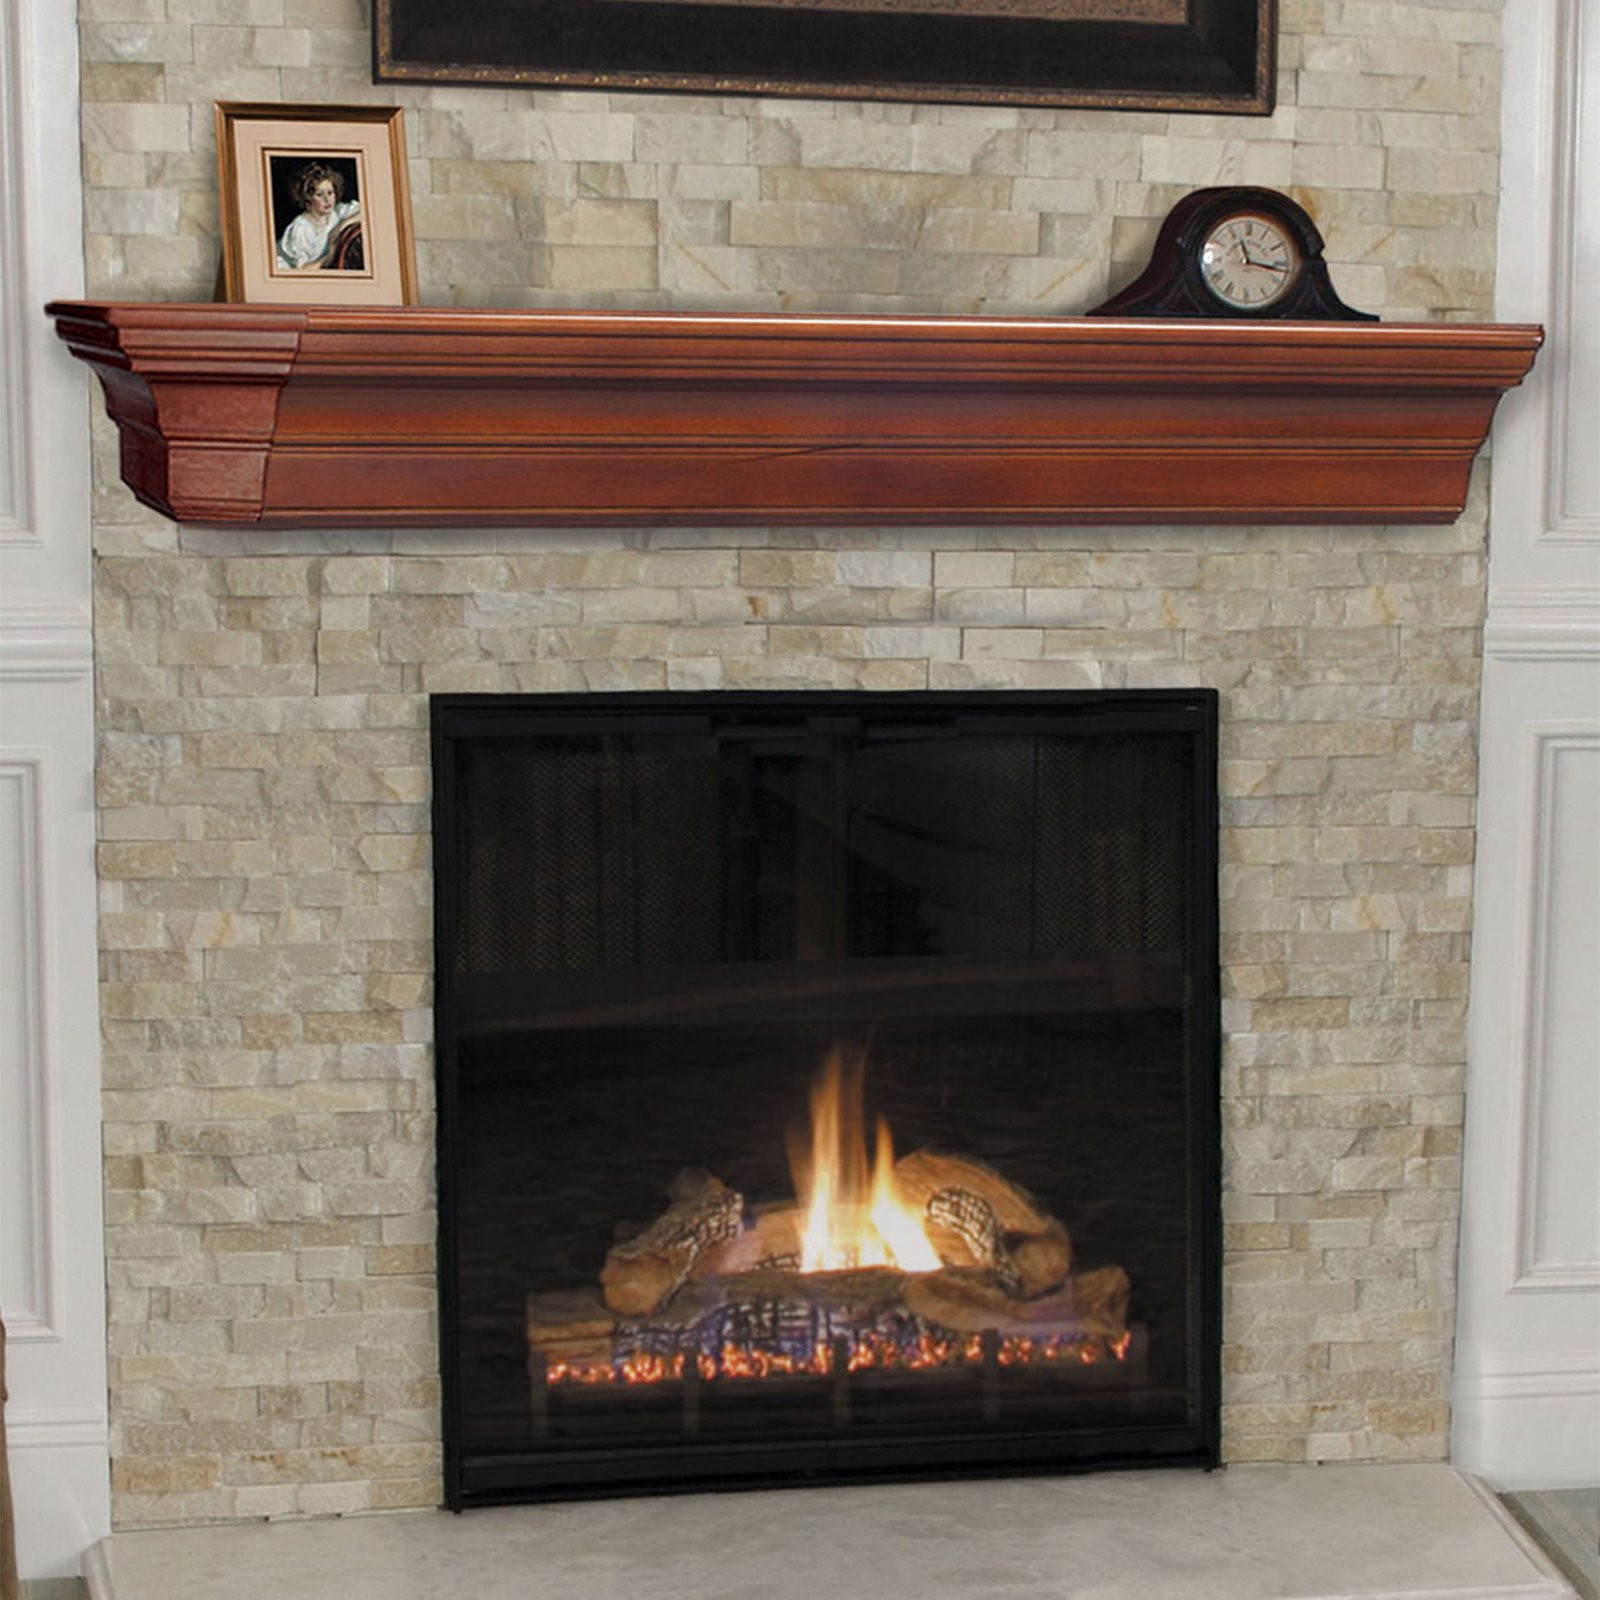 Best ideas about Fireplace Mantel Shelf . Save or Pin Pearl Mantels Lindon Traditional Fireplace Mantel Shelf Now.